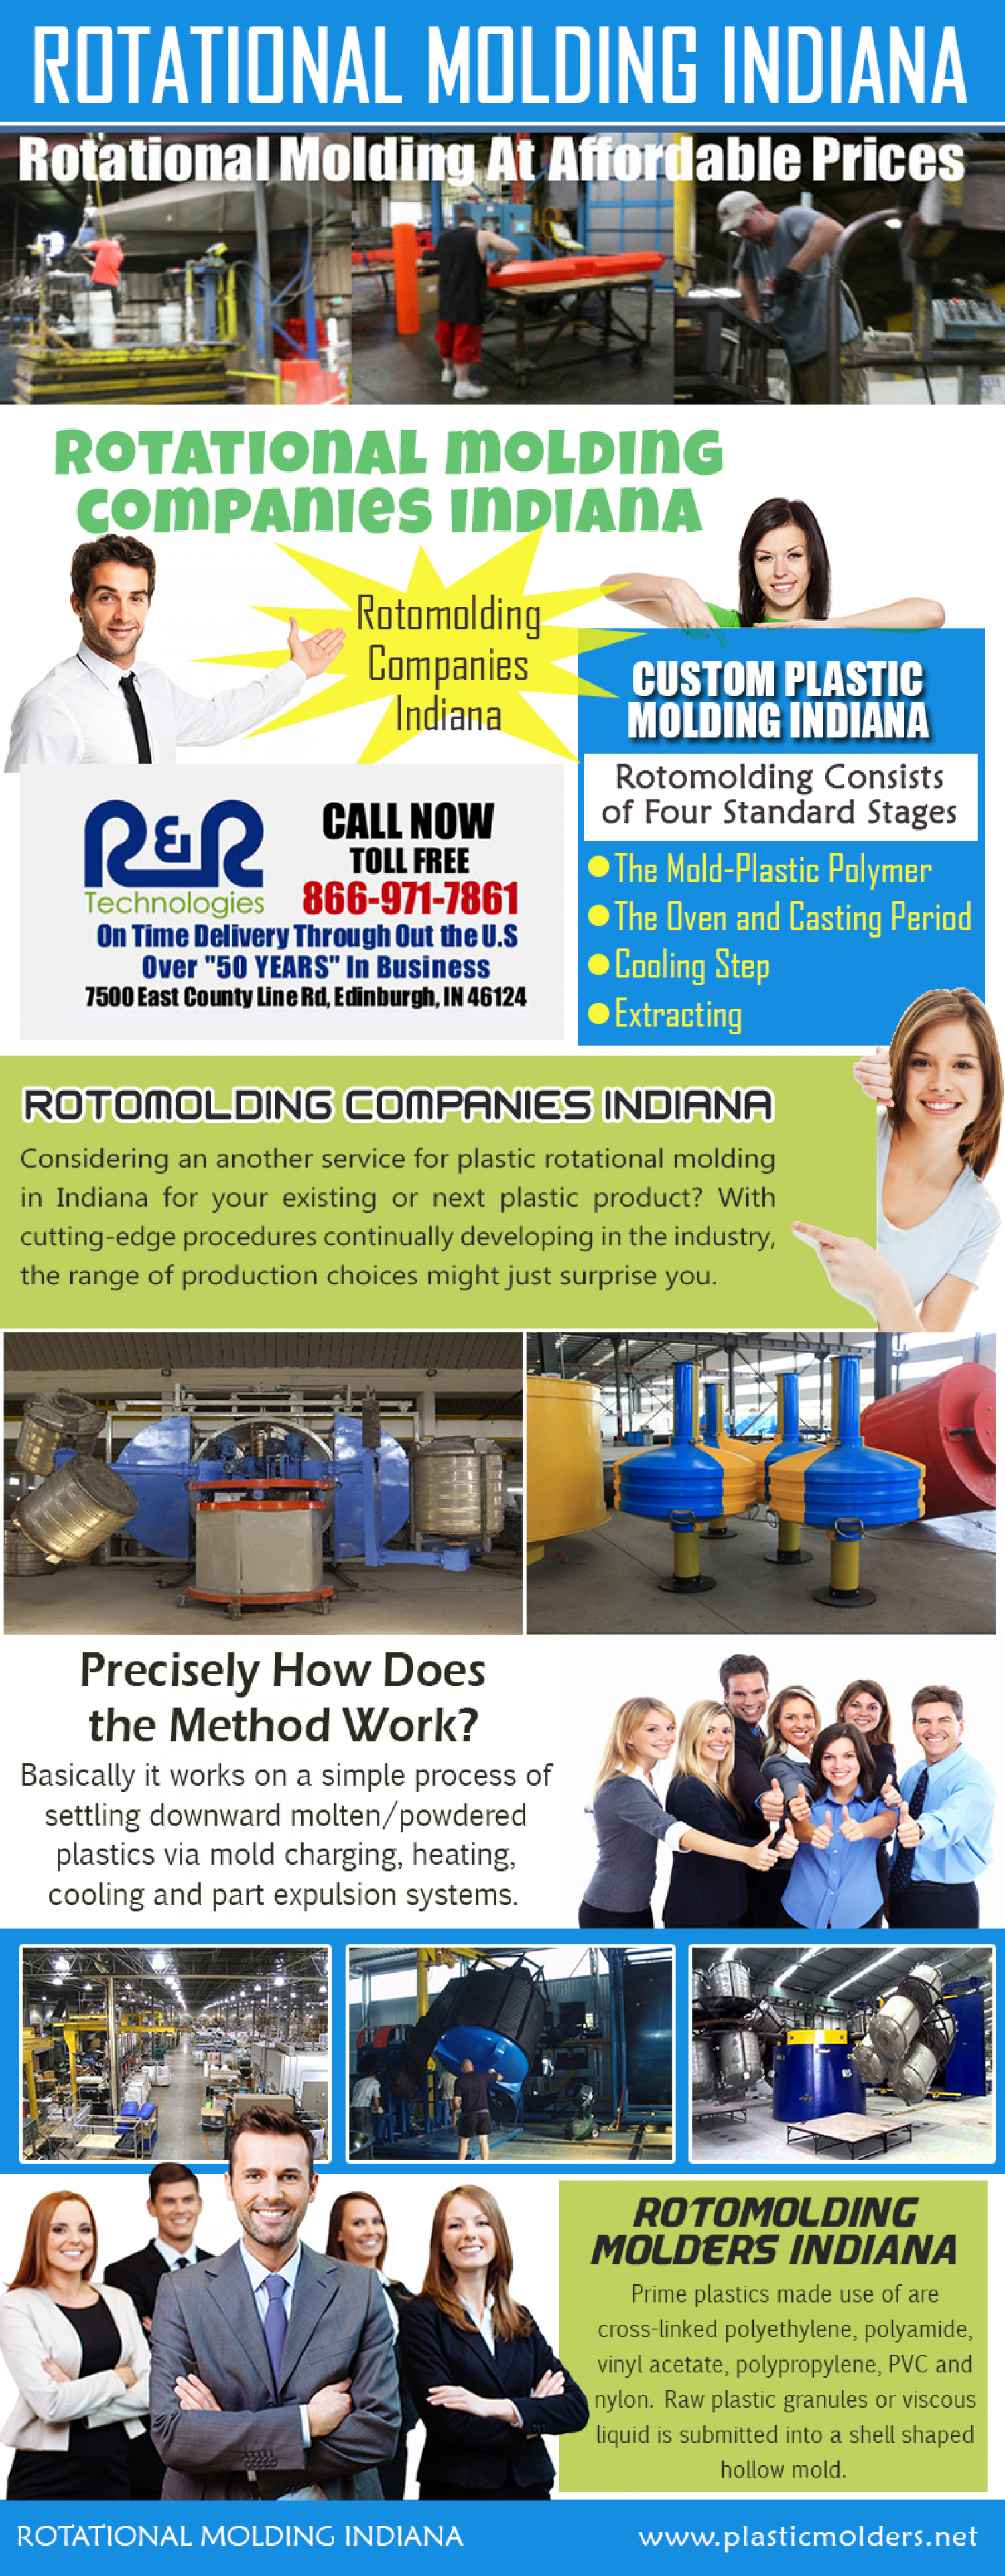 Rotational Molding Indiana Infographic